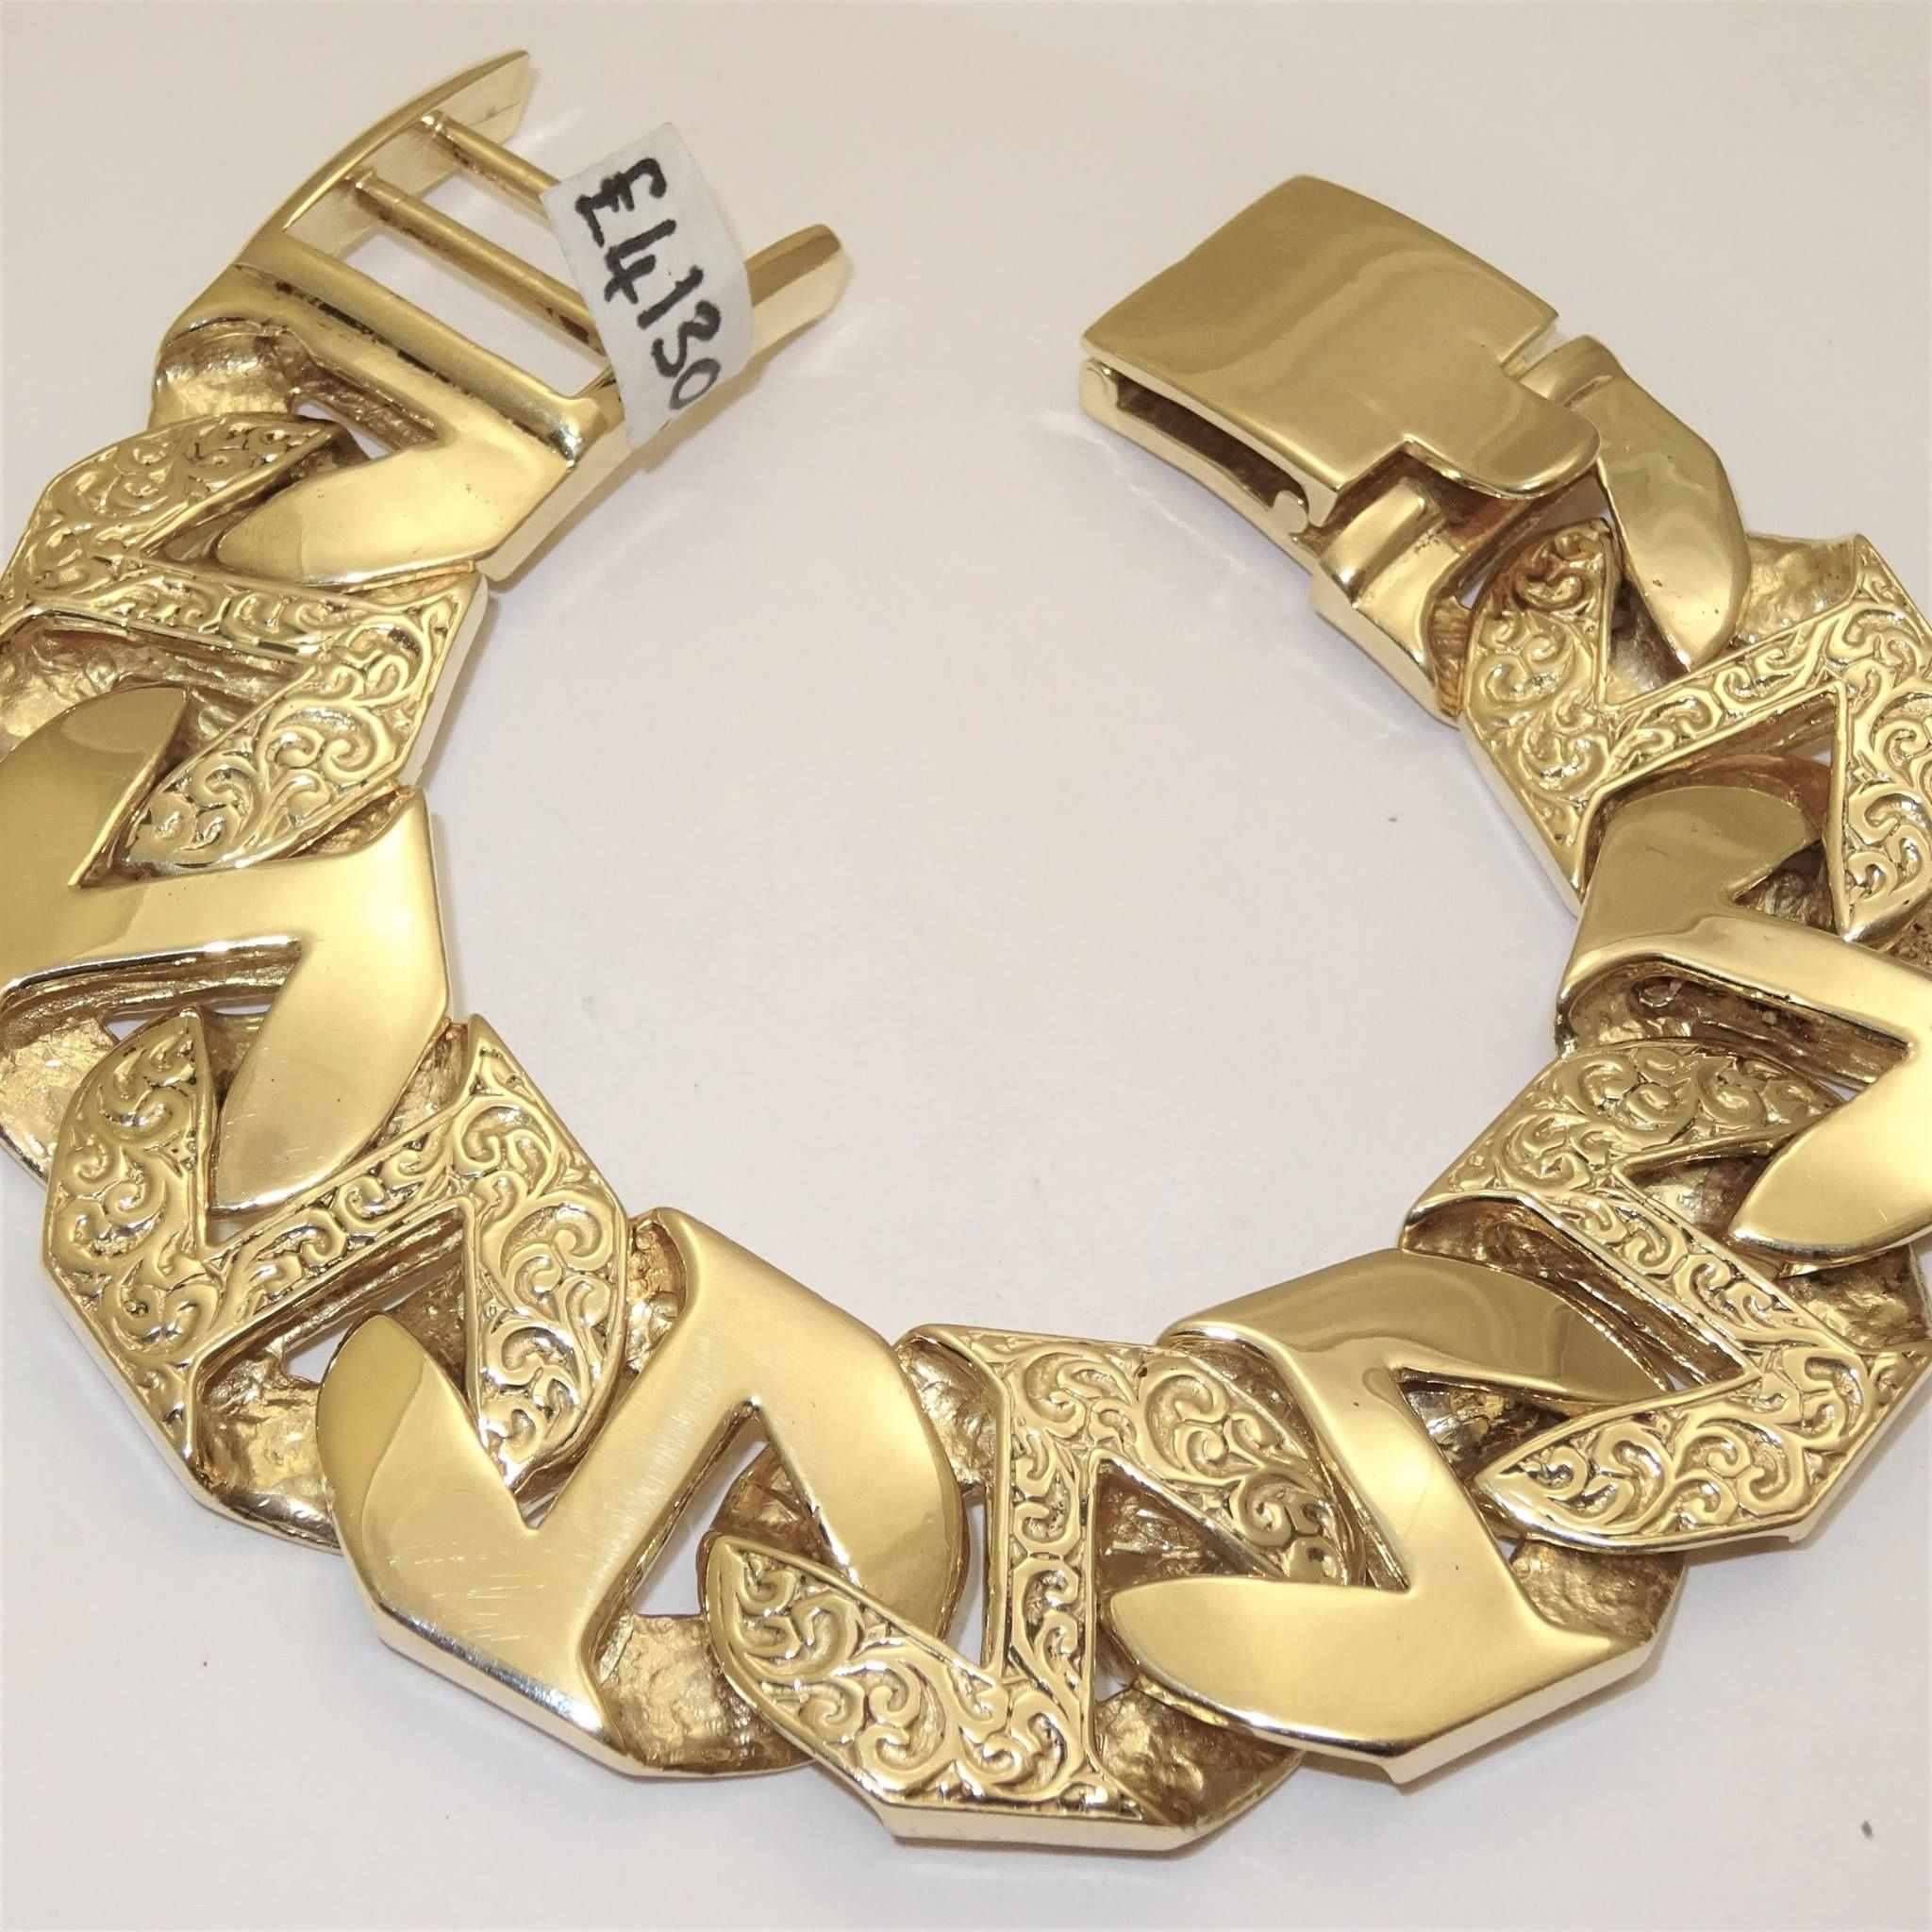 Broker Gold Has Preloved And New Bracelets To Suit Everybody We Have Many Differing Designs